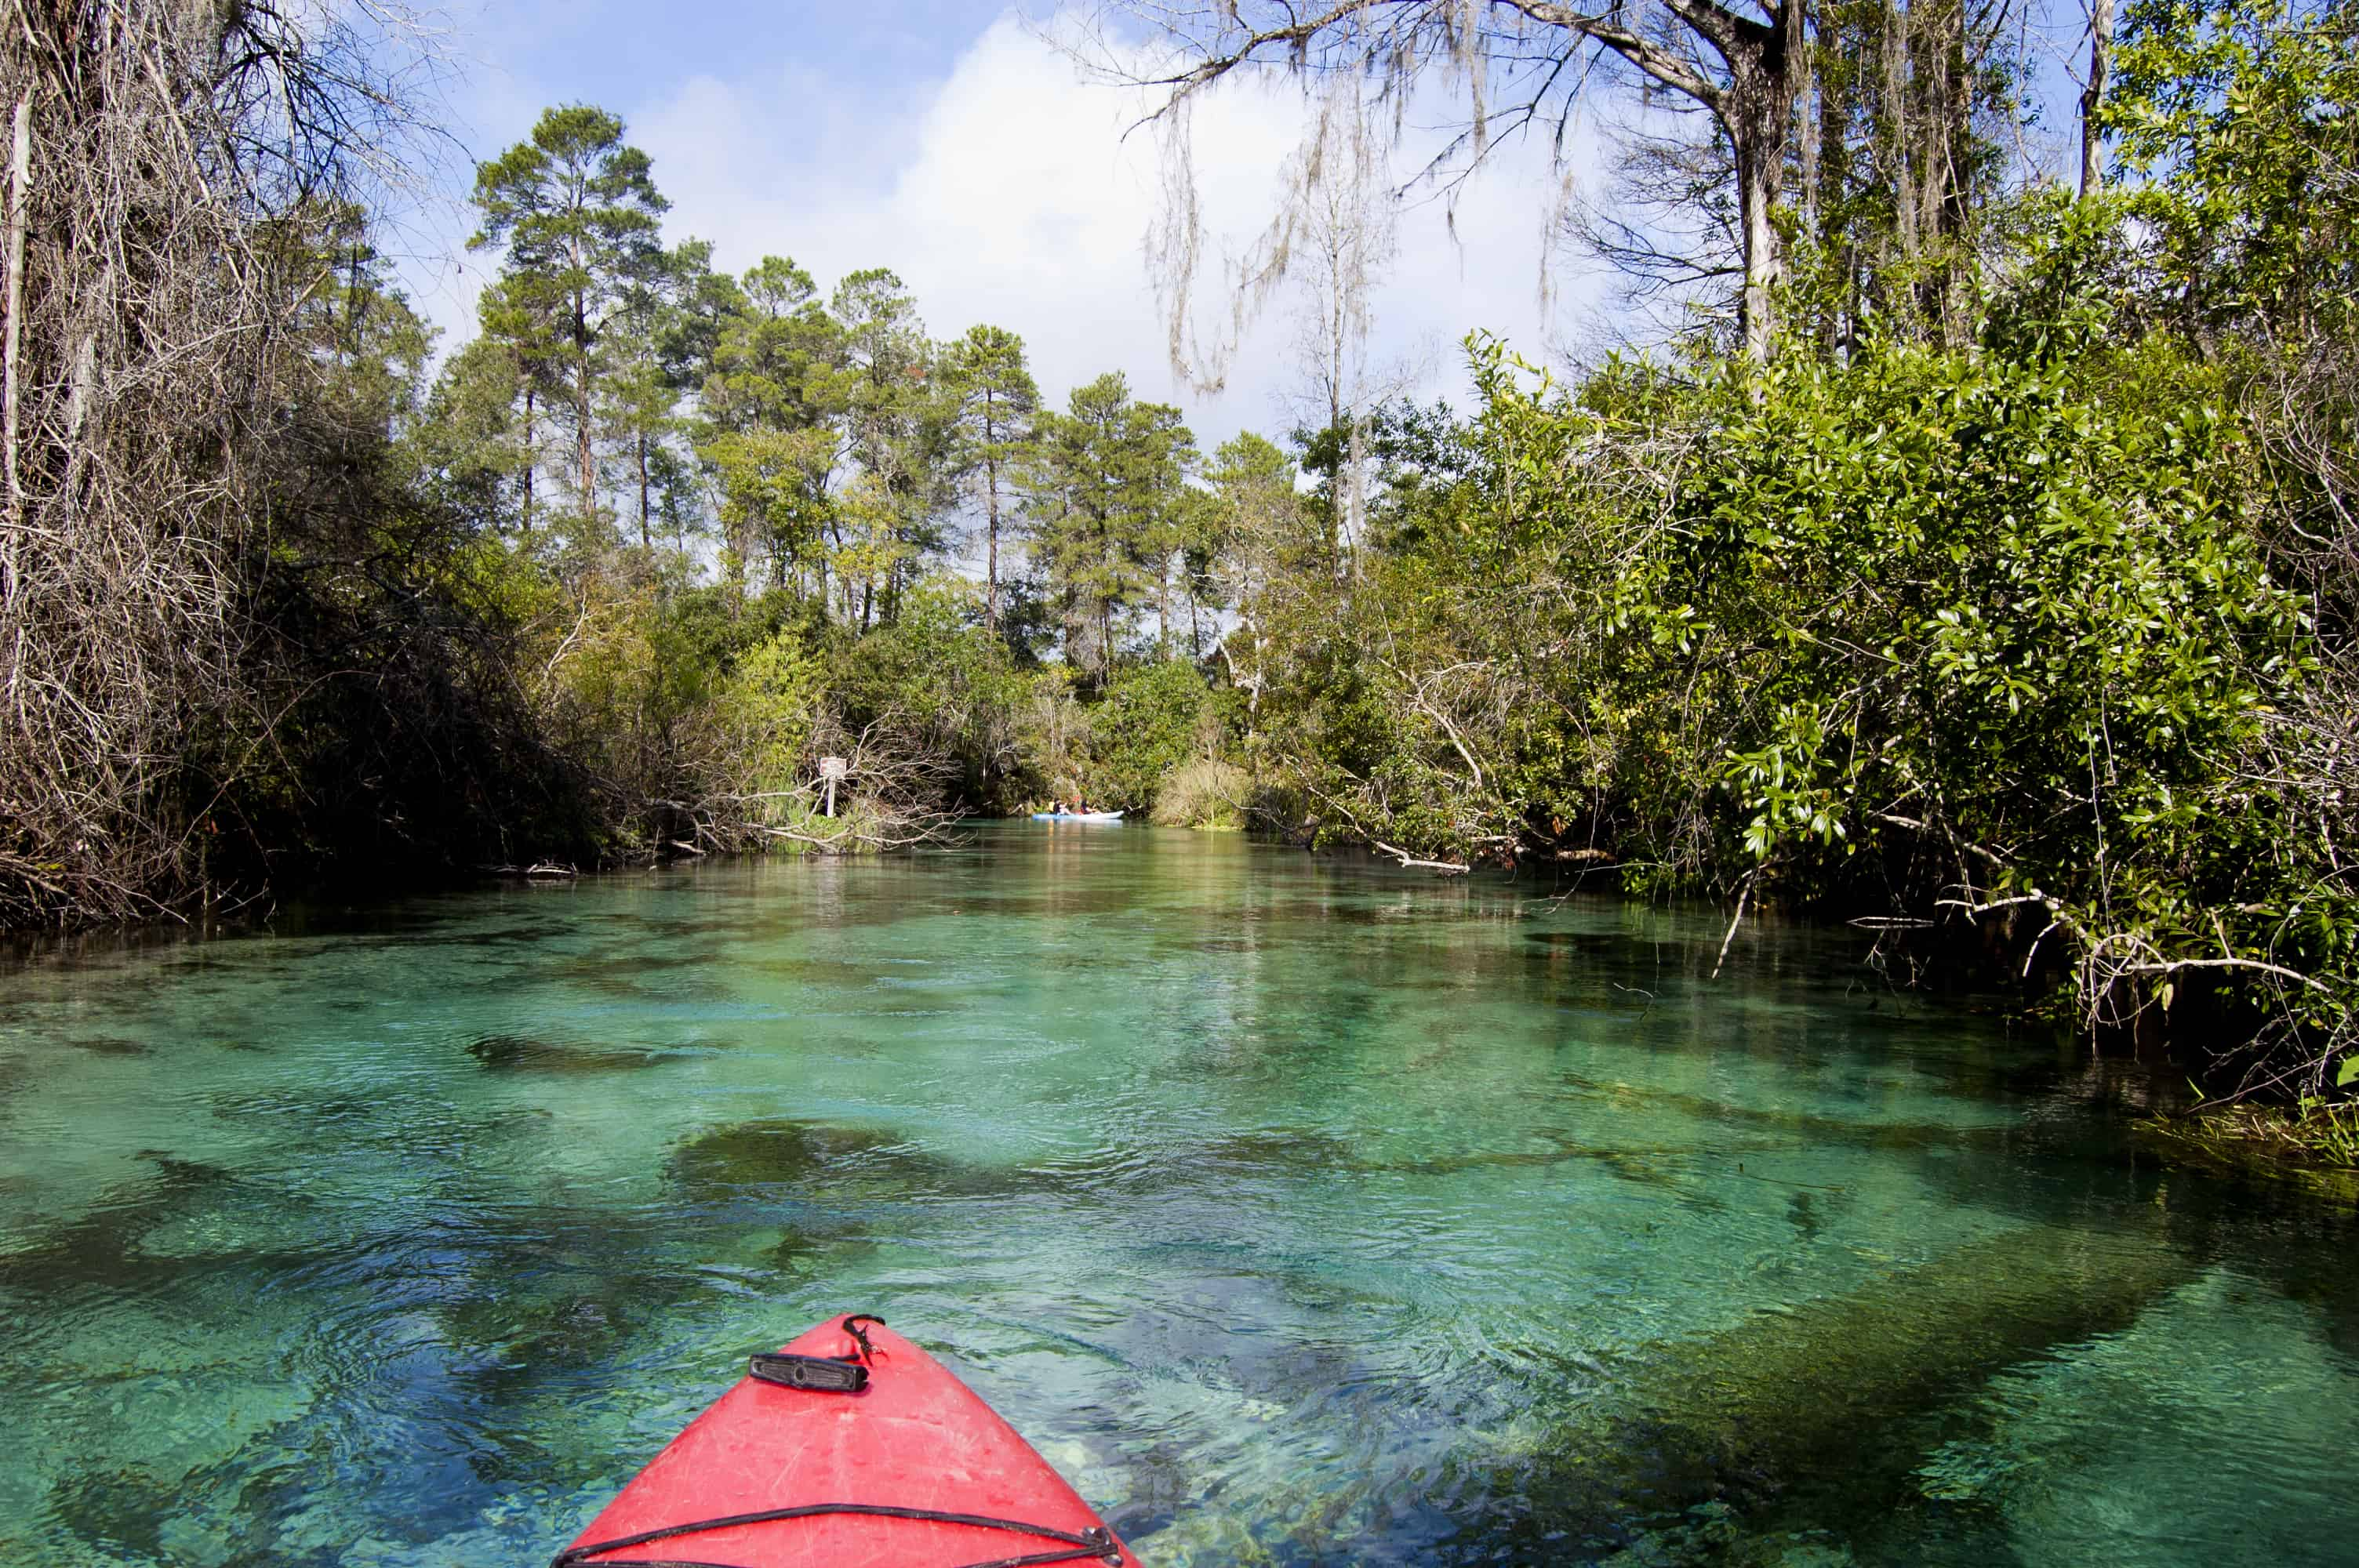 Kayaking on the Weeki Wachee River